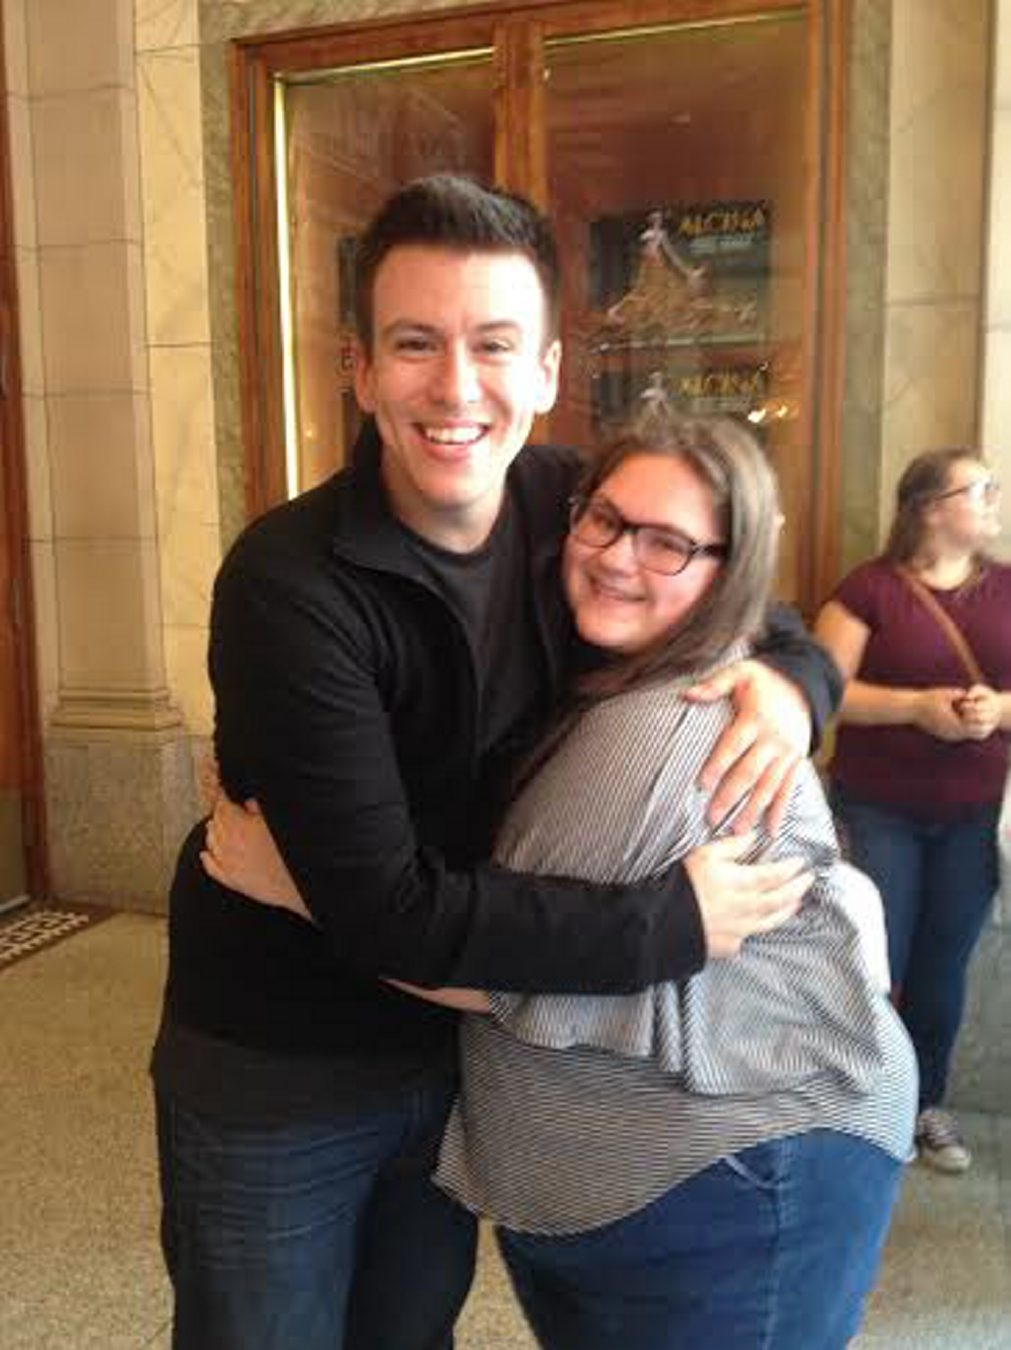 Deanna Garwol, a sophomore at Immaculata Academy, met YouTube star Philip DeFranco in Toronto recently.